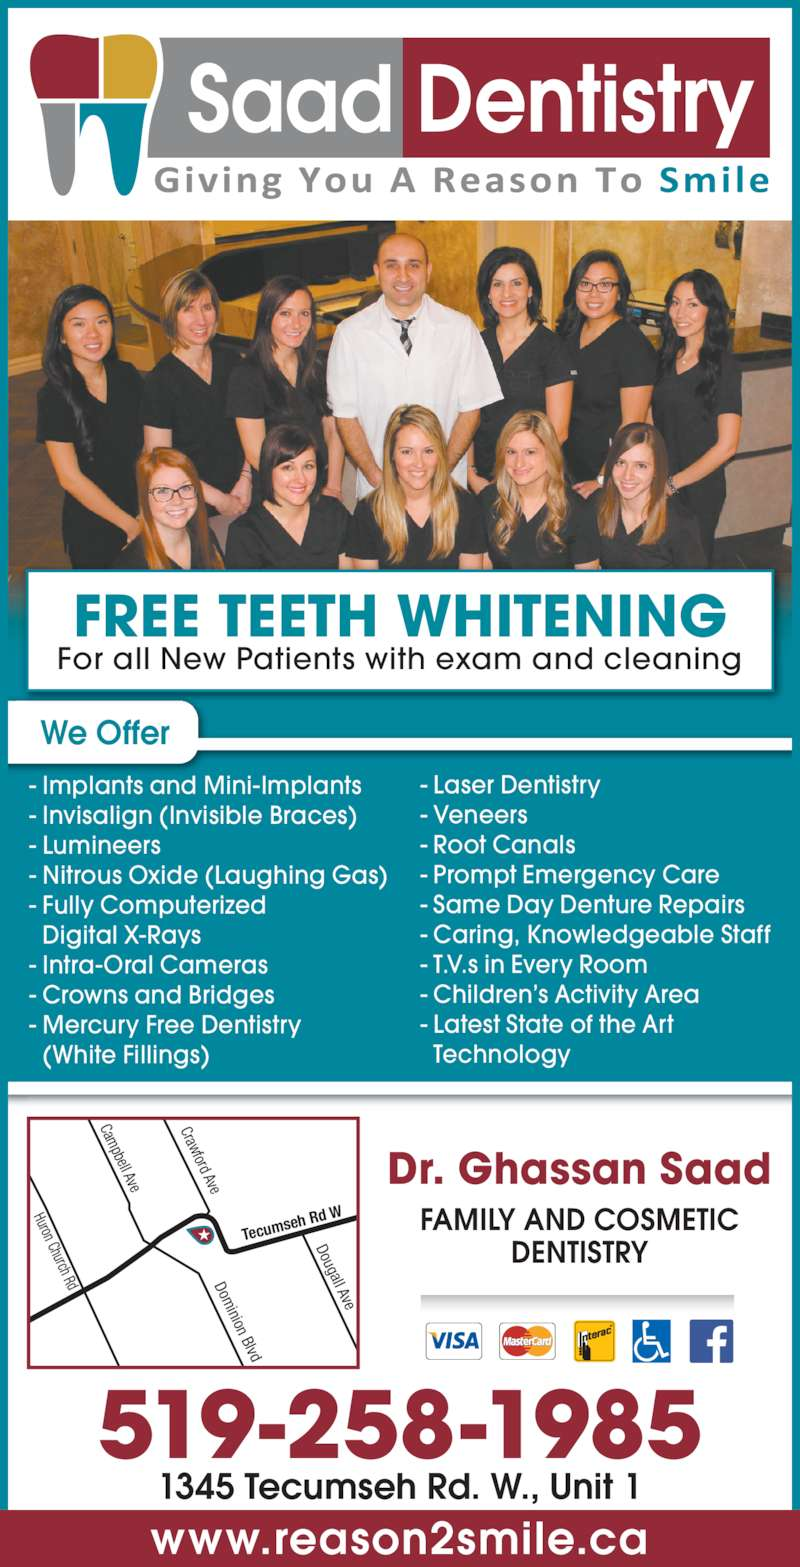 Saad Ghassan Dr (519-258-1985) - Display Ad - - Root Canals - Prompt Emergency Care - Same Day Denture Repairs - Caring, Knowledgeable Staff - T.V.s in Every Room - Children's Activity Area - Latest State of the Art   Technology FAMILY AND COSMETIC DENTISTRY FREE TEETH WHITENING For all New Patients with exam and cleaning www.reason2smile.ca - Fully Computerized   Digital X-Rays - Intra-Oral Cameras - Crowns and Bridges - Mercury Free Dentistry   (White Fillings) - Laser Dentistry - Veneers 519-258-1985 Huron Church Rd Cam pbell Ave Dom inion Blvd Crawford Ave Dougall Ave Tecum seh Rd  W 1345 Tecumseh Rd. W., Unit 1 Dr. Ghassan Saad We Offer - Implants and Mini-Implants - Invisalign (Invisible Braces) - Lumineers - Nitrous Oxide (Laughing Gas)